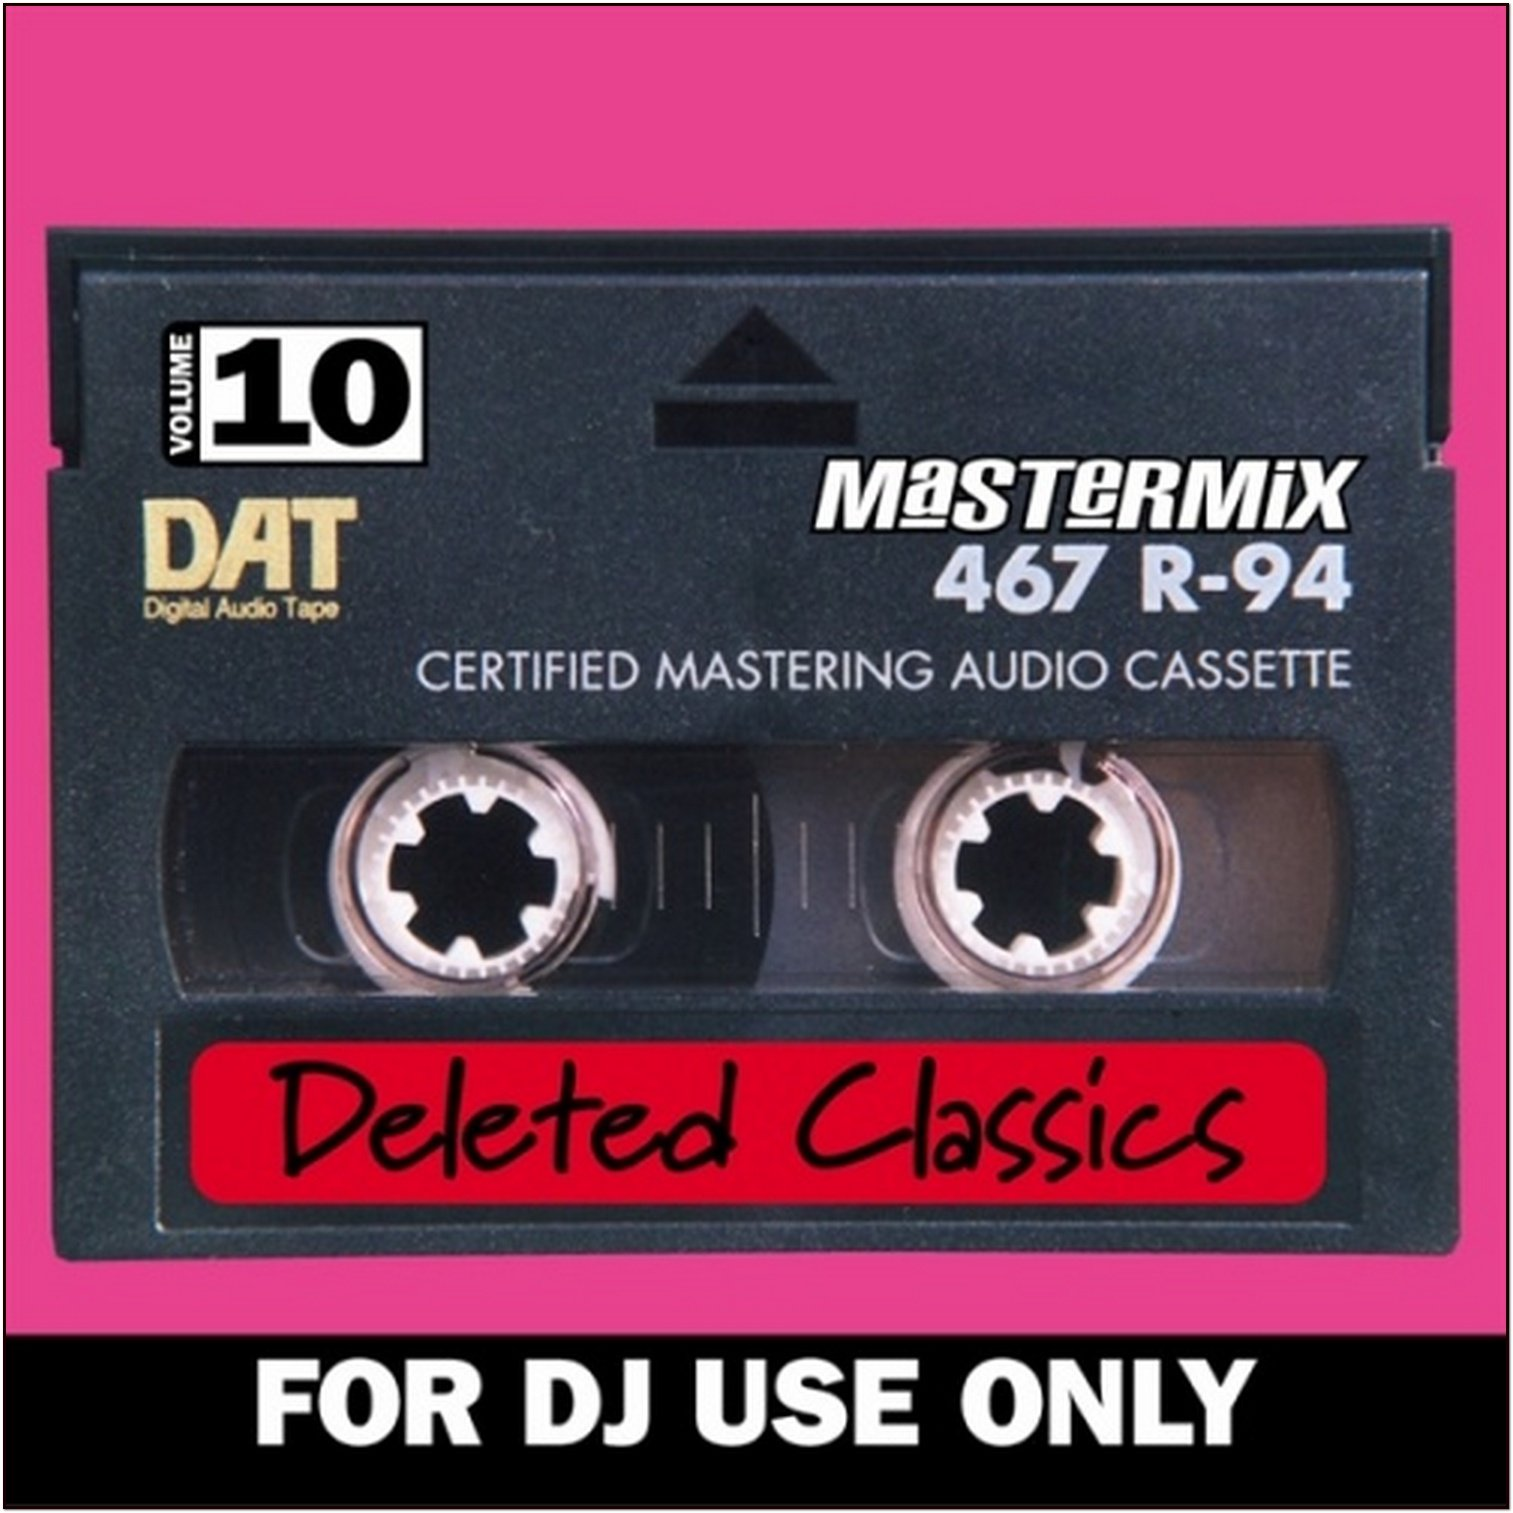 mastermix deleted classic volume 20 22 the dj music pool. Black Bedroom Furniture Sets. Home Design Ideas